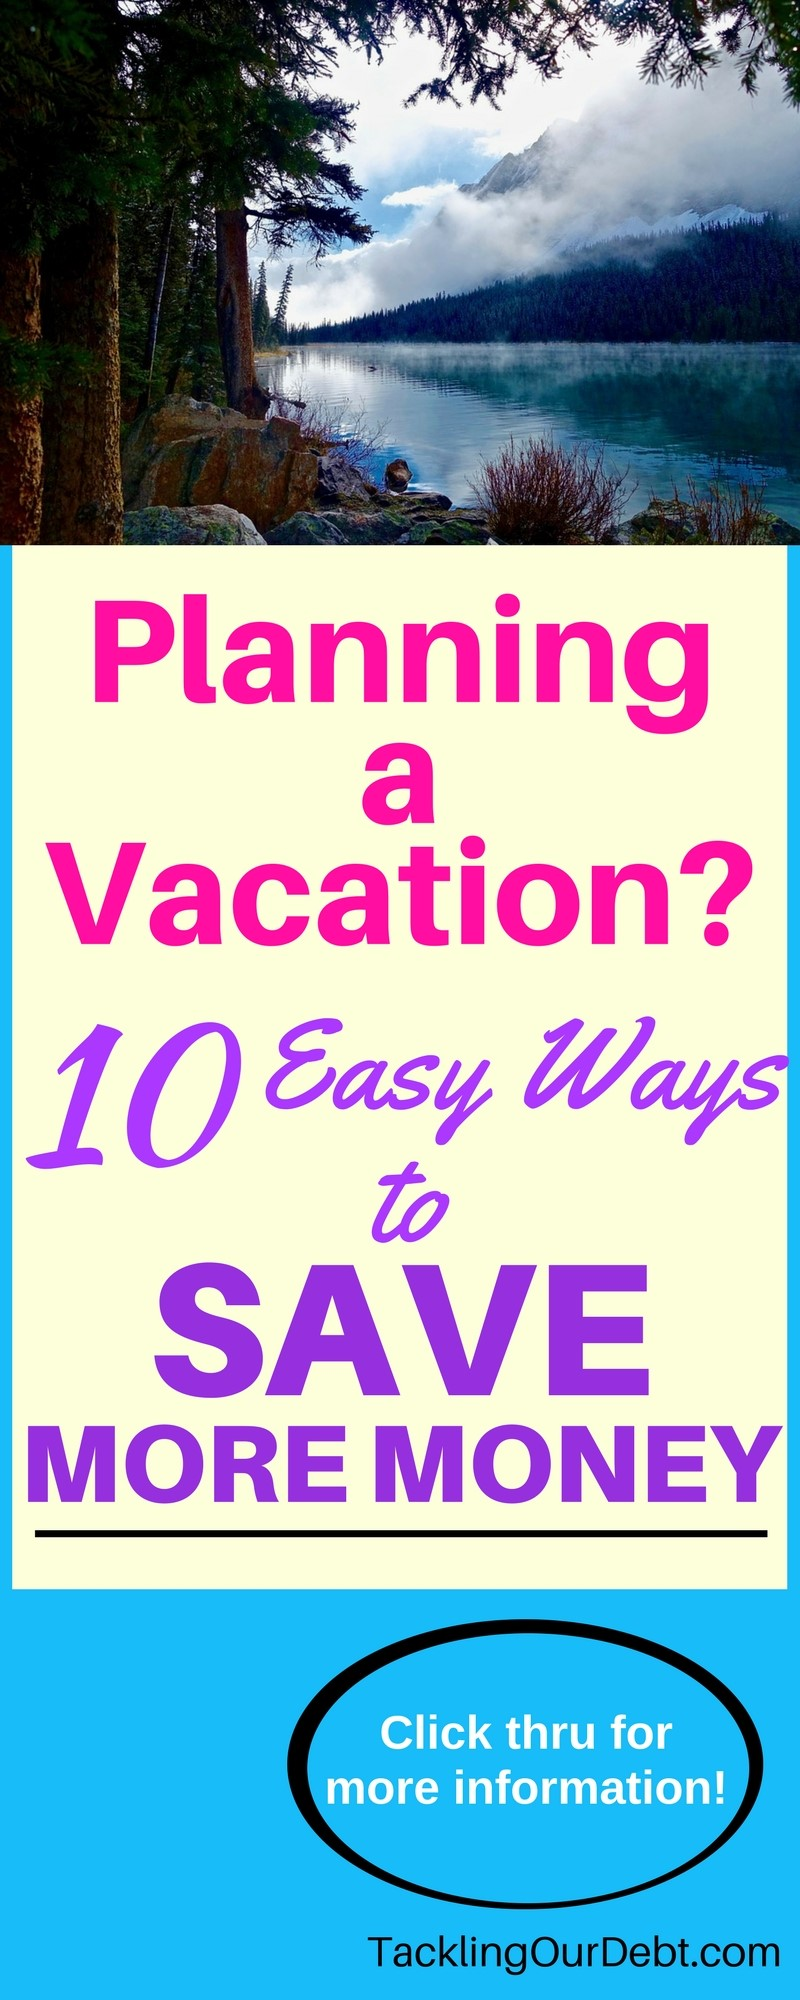 Do you enjoy traveling? Are you planning your next vacation? Here are ten easy ways to save more money the next time you travel. Click thru for more information!